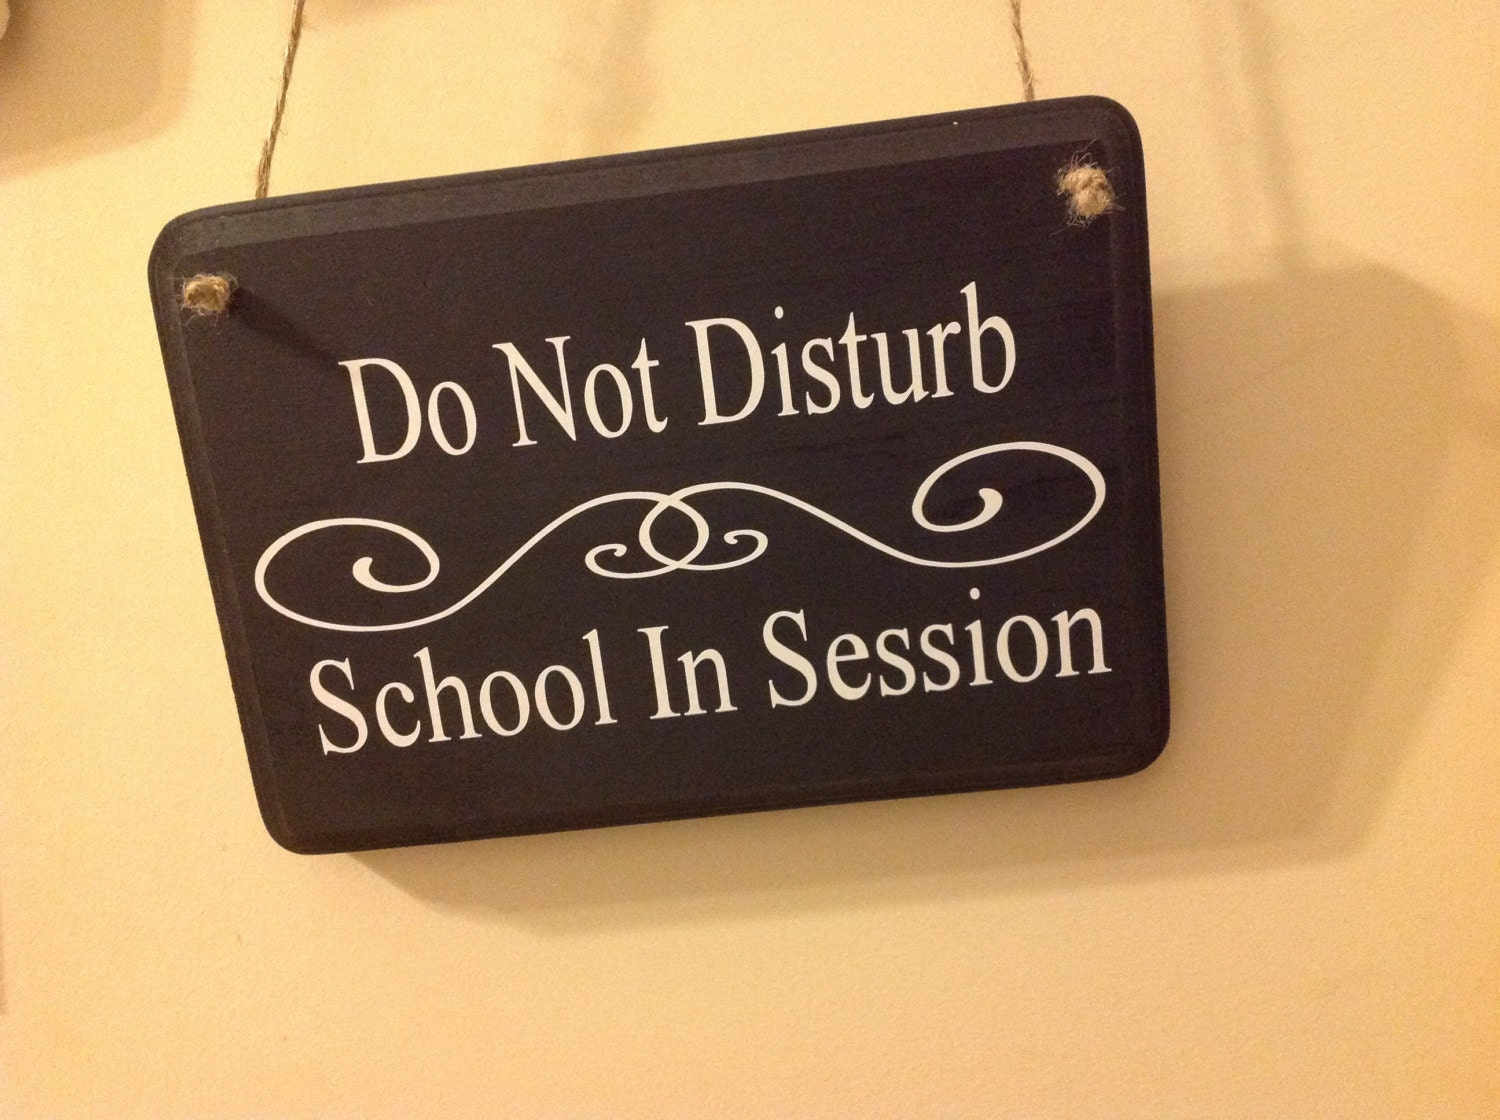 school in session do not disturb class in session door hanger classroom sign teacher gift classroom